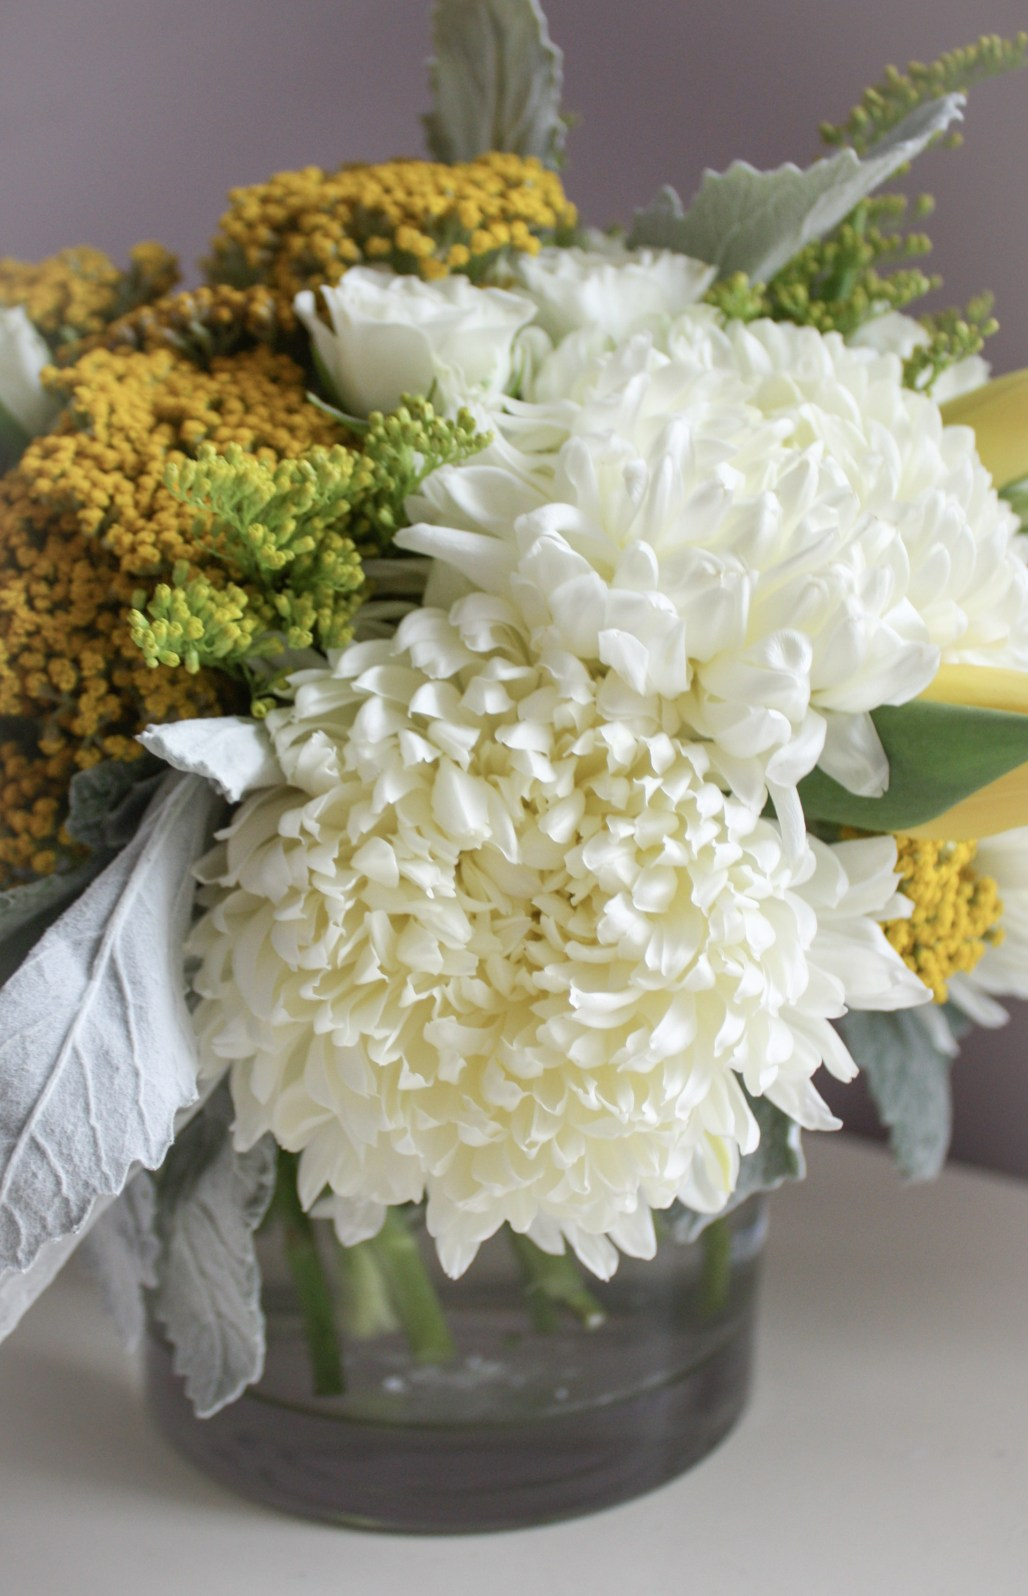 How To Care for Floral Centerpieces at Home | Dreamery Events